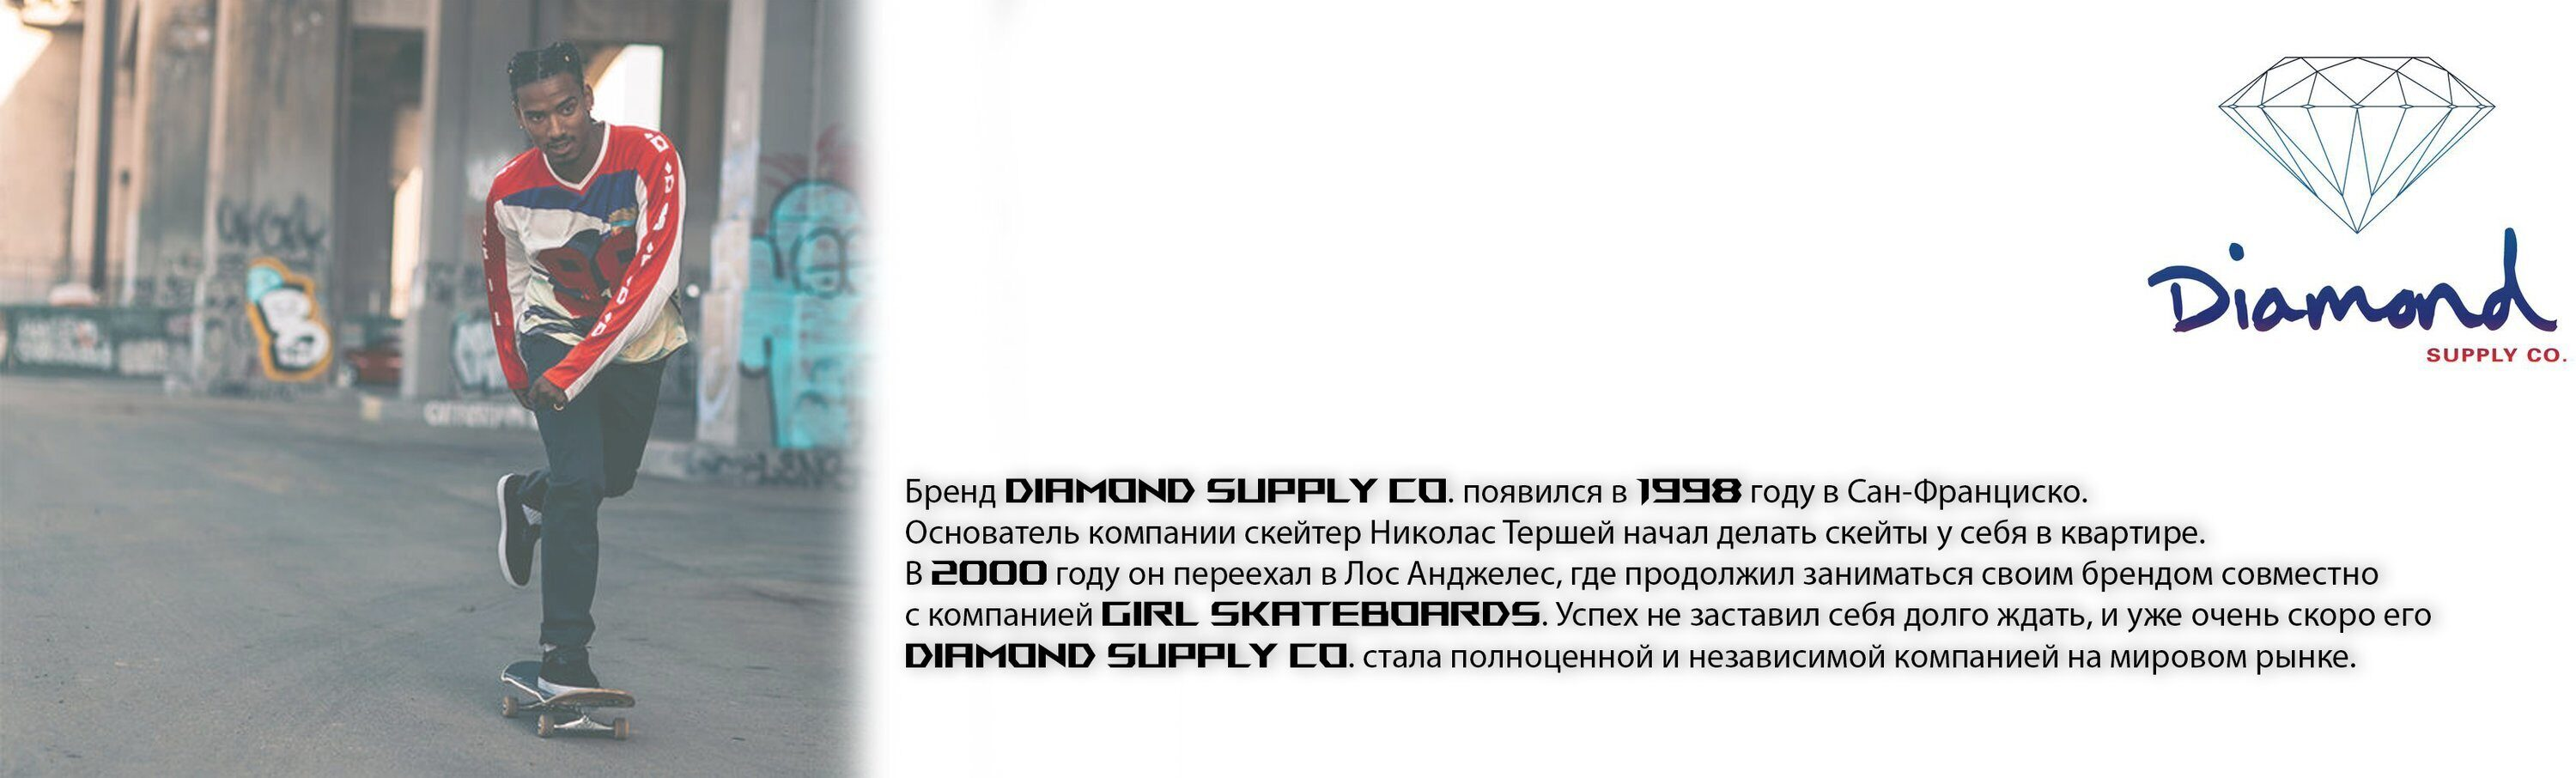 BRAND_Diamond Supply Co.